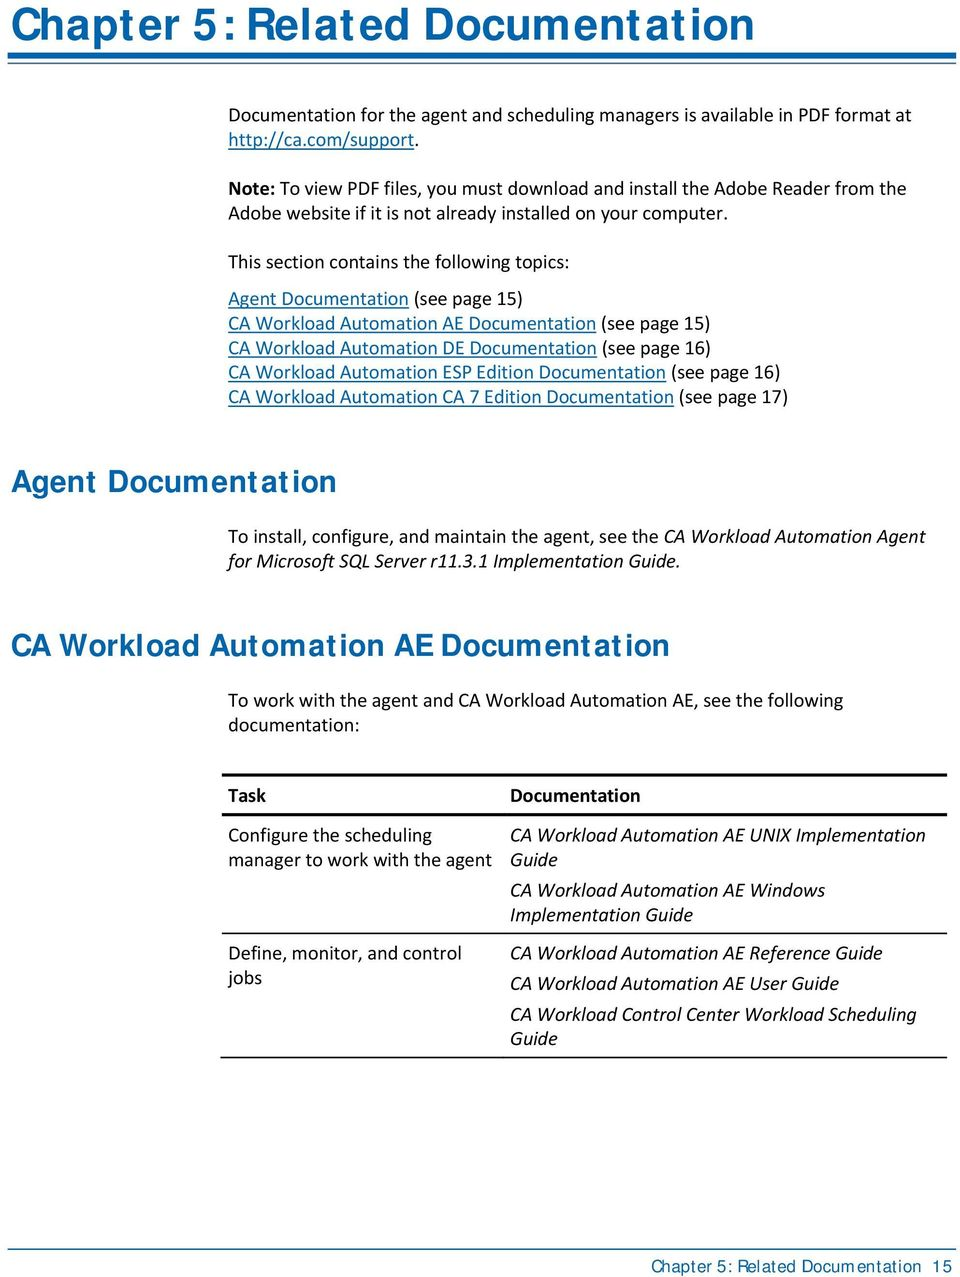 This section contains the following topics: Agent Documentation (see page 15) CA Workload Automation AE Documentation (see page 15) CA Workload Automation DE Documentation (see page 16) CA Workload